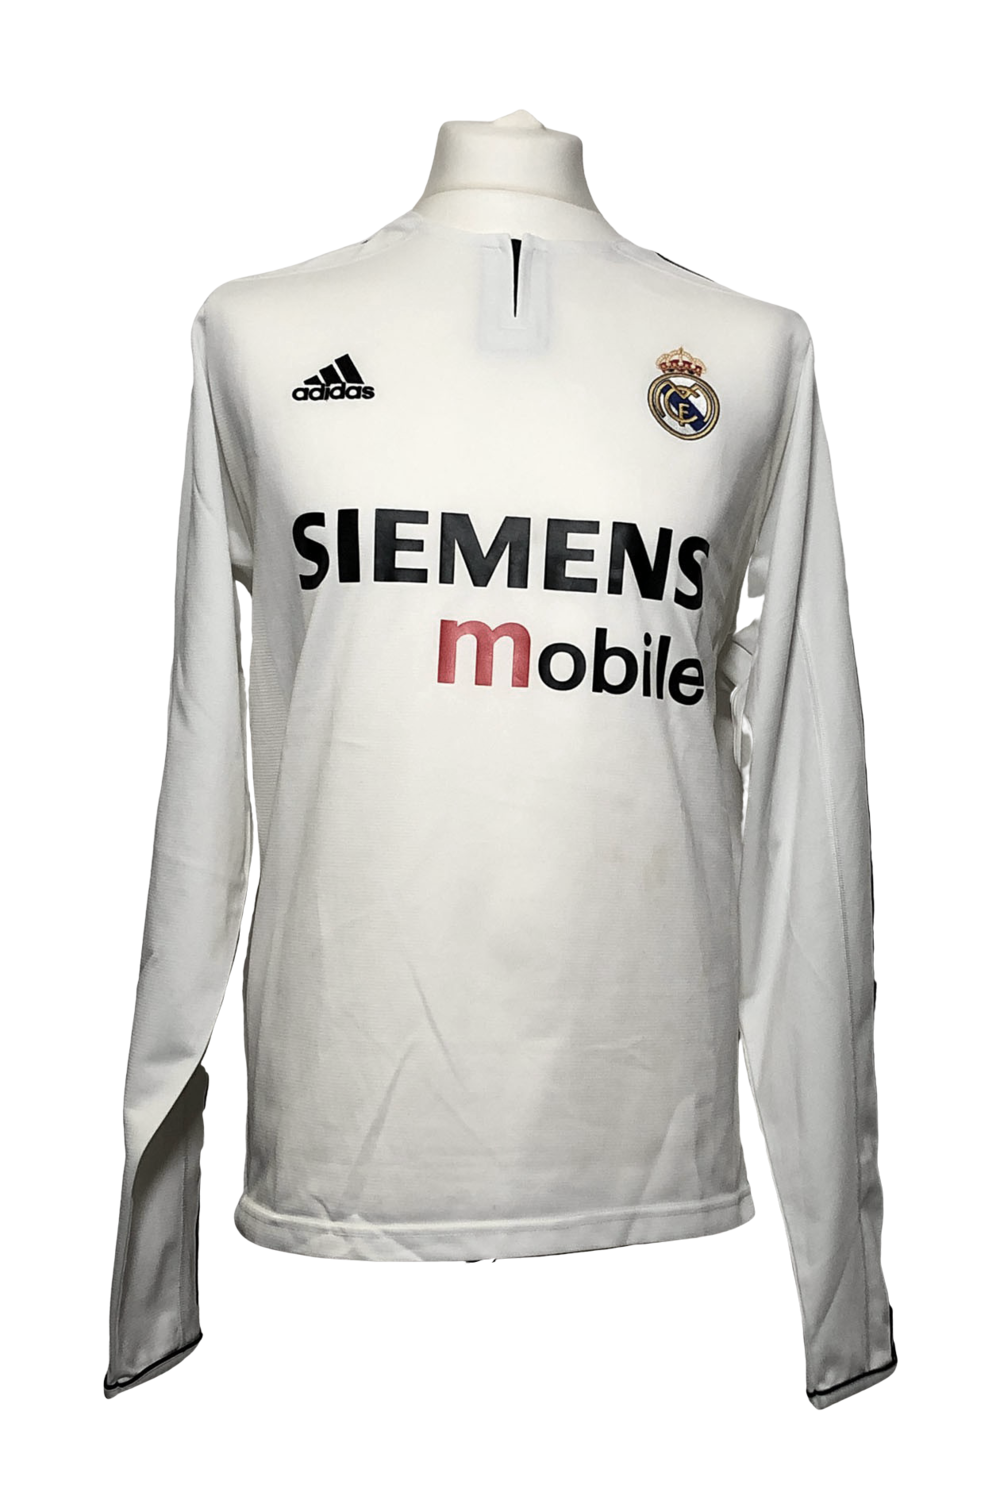 Maillot Real Madrid Champions League Home 2003/04